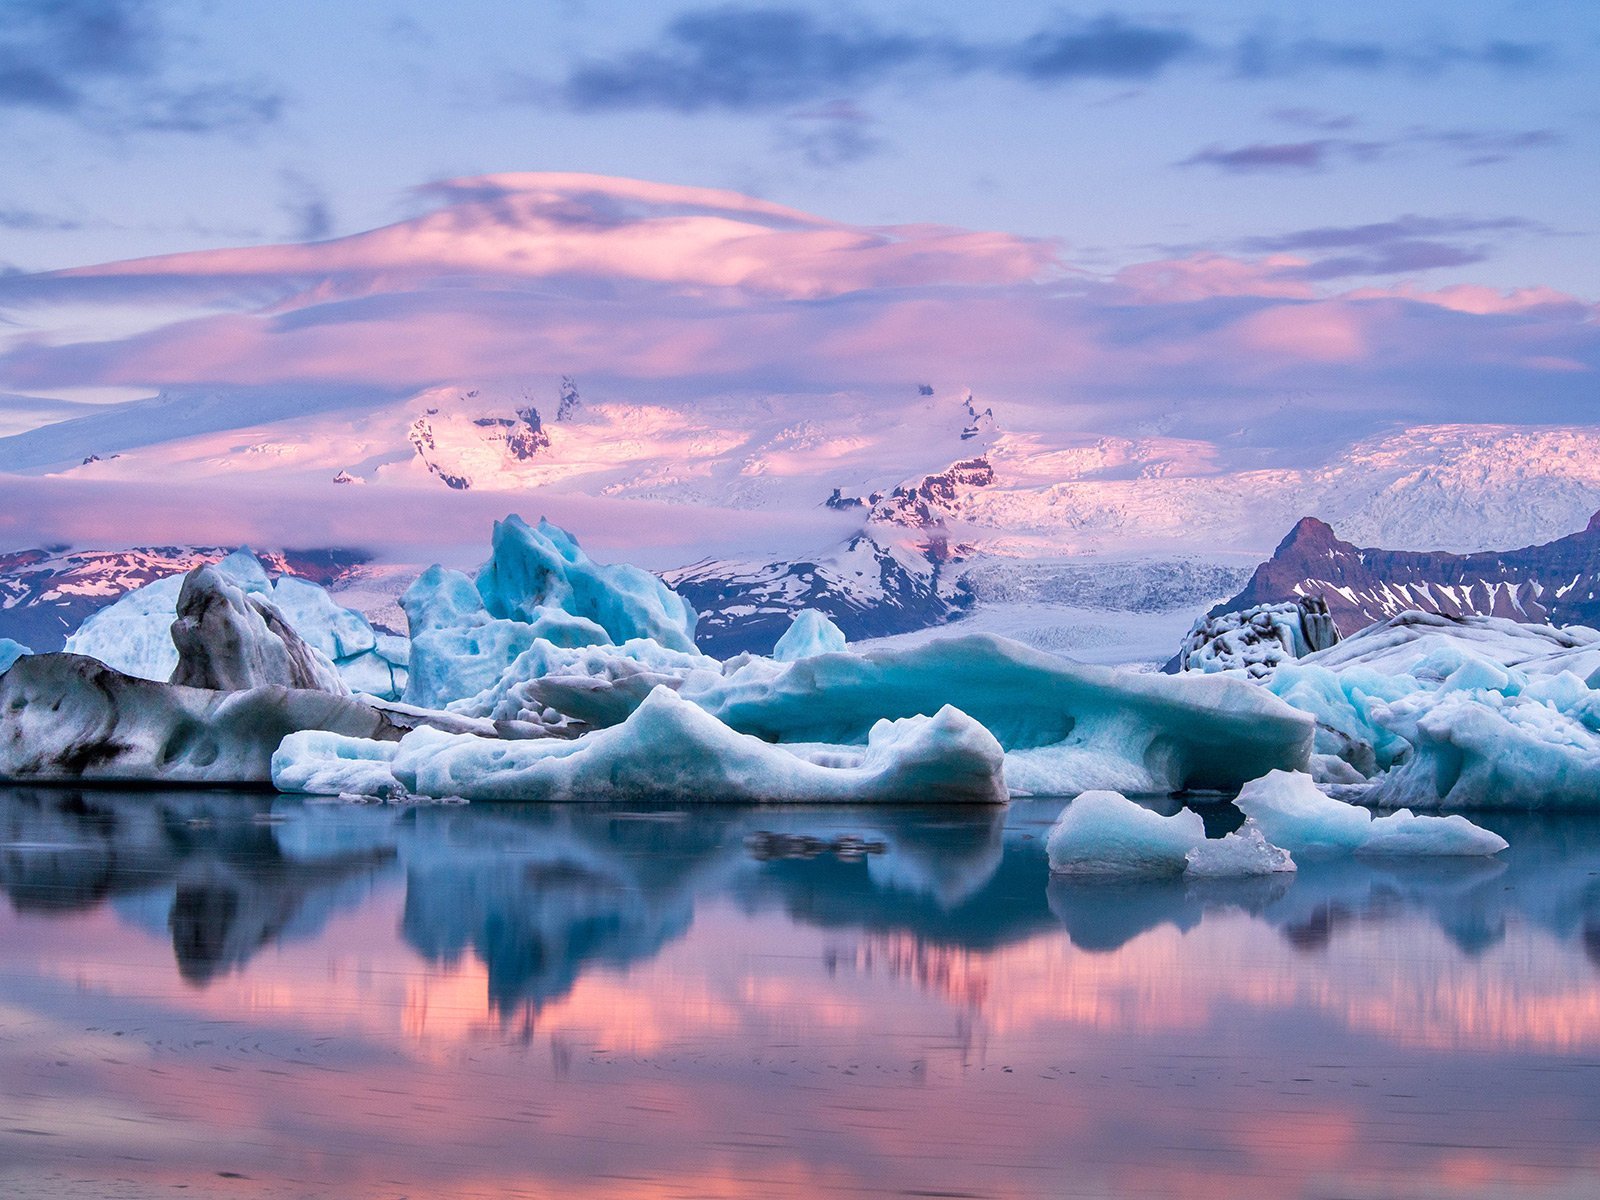 How to see a sunset over floating icebergs in Reykjavik